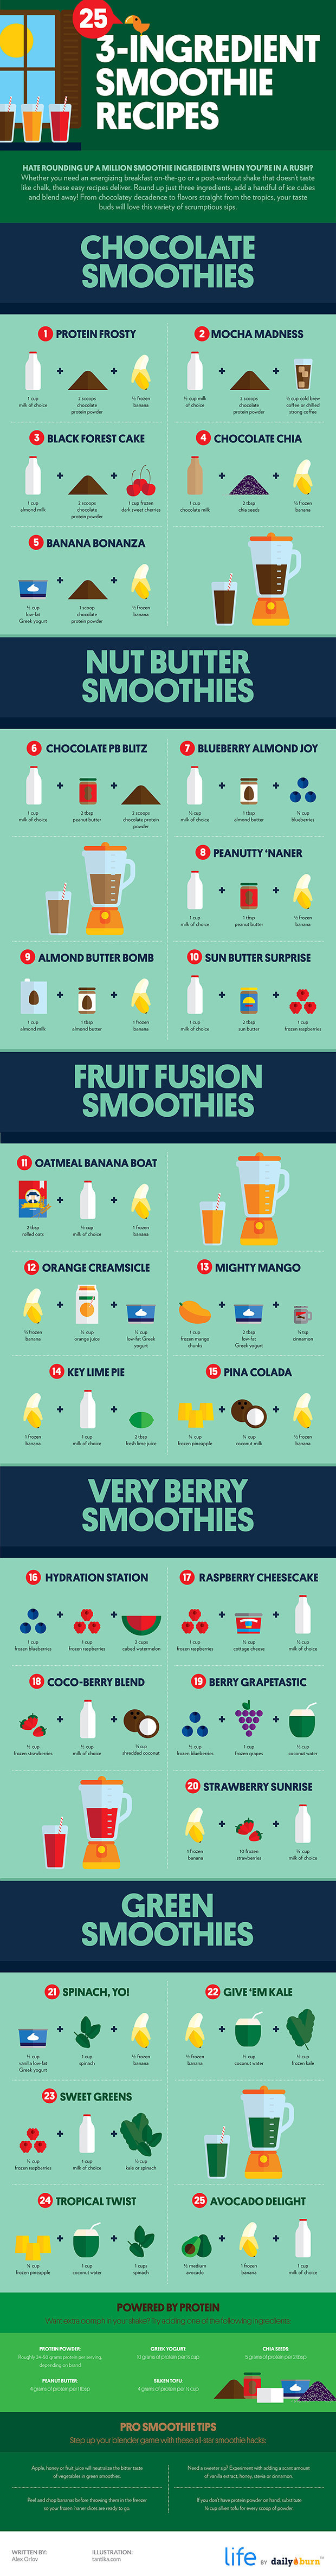 http://dailyburn.com/life/recipes/easy-smoothie-recipes-infographic/